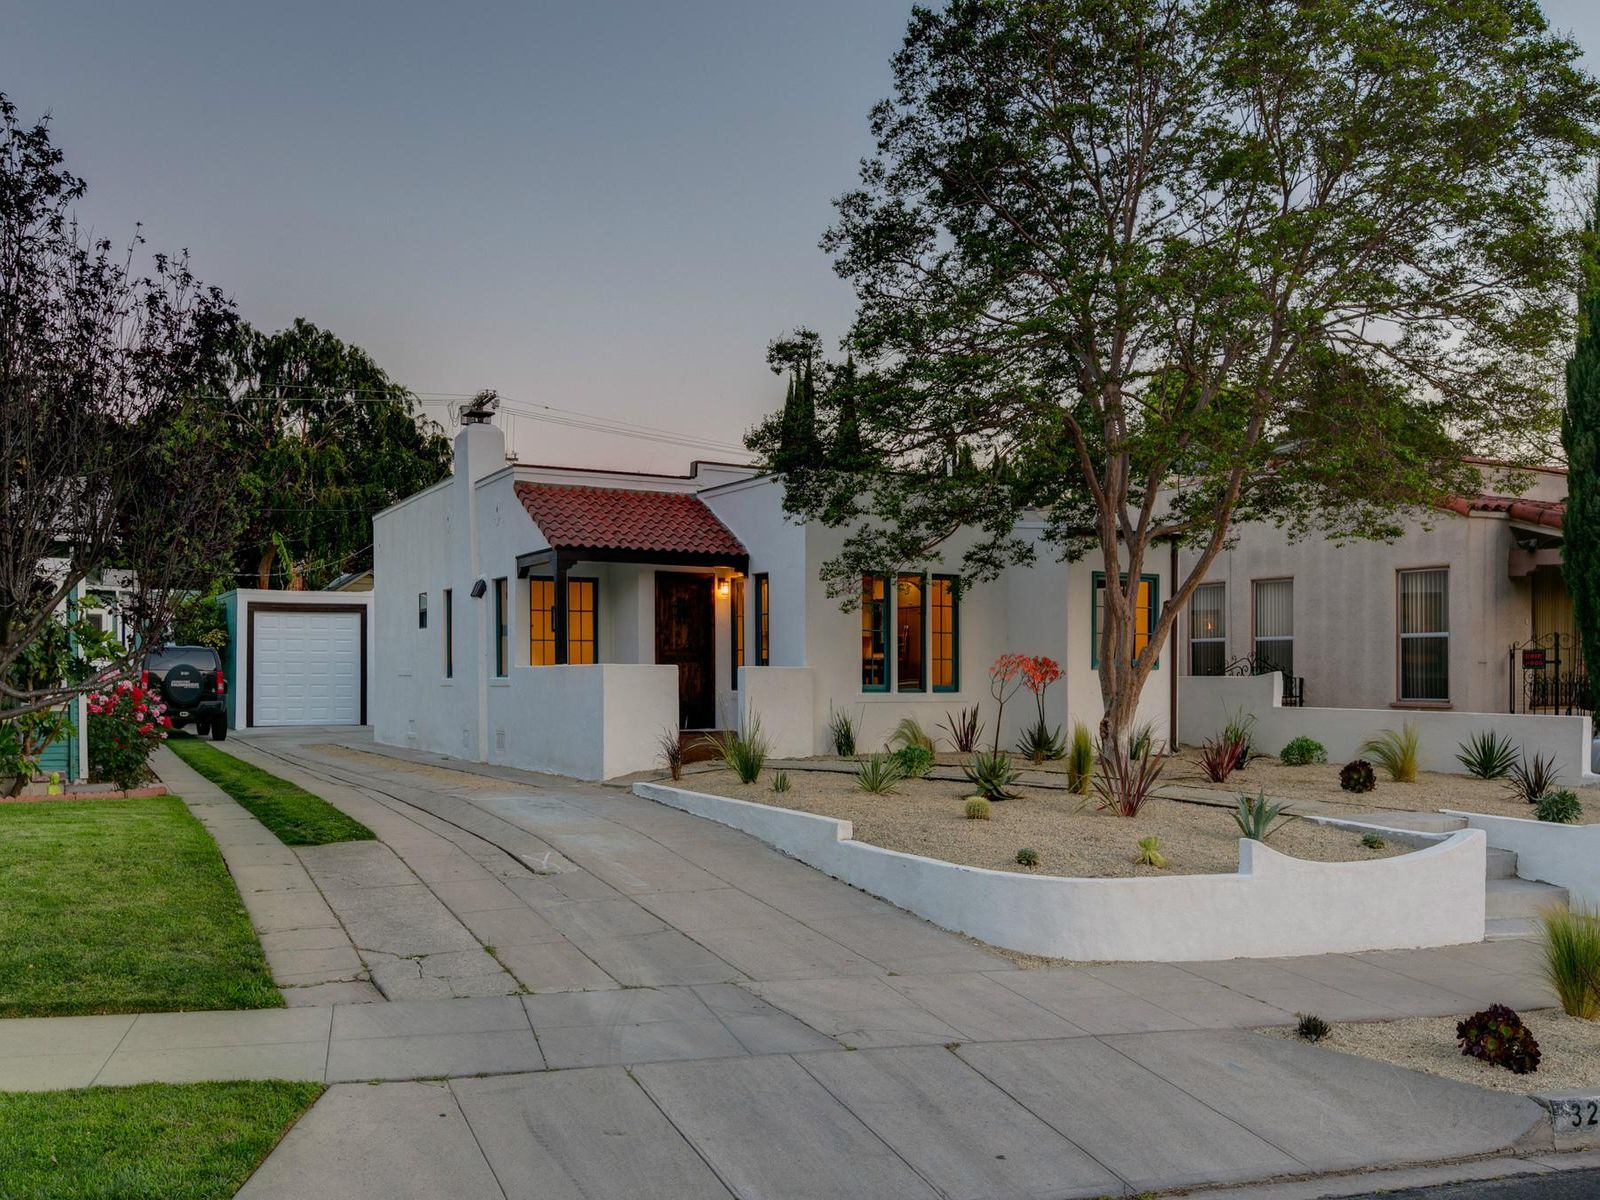 3234 Ingledale Terrace, Los Angeles CA Single Family Home - Los Angeles Real Estate